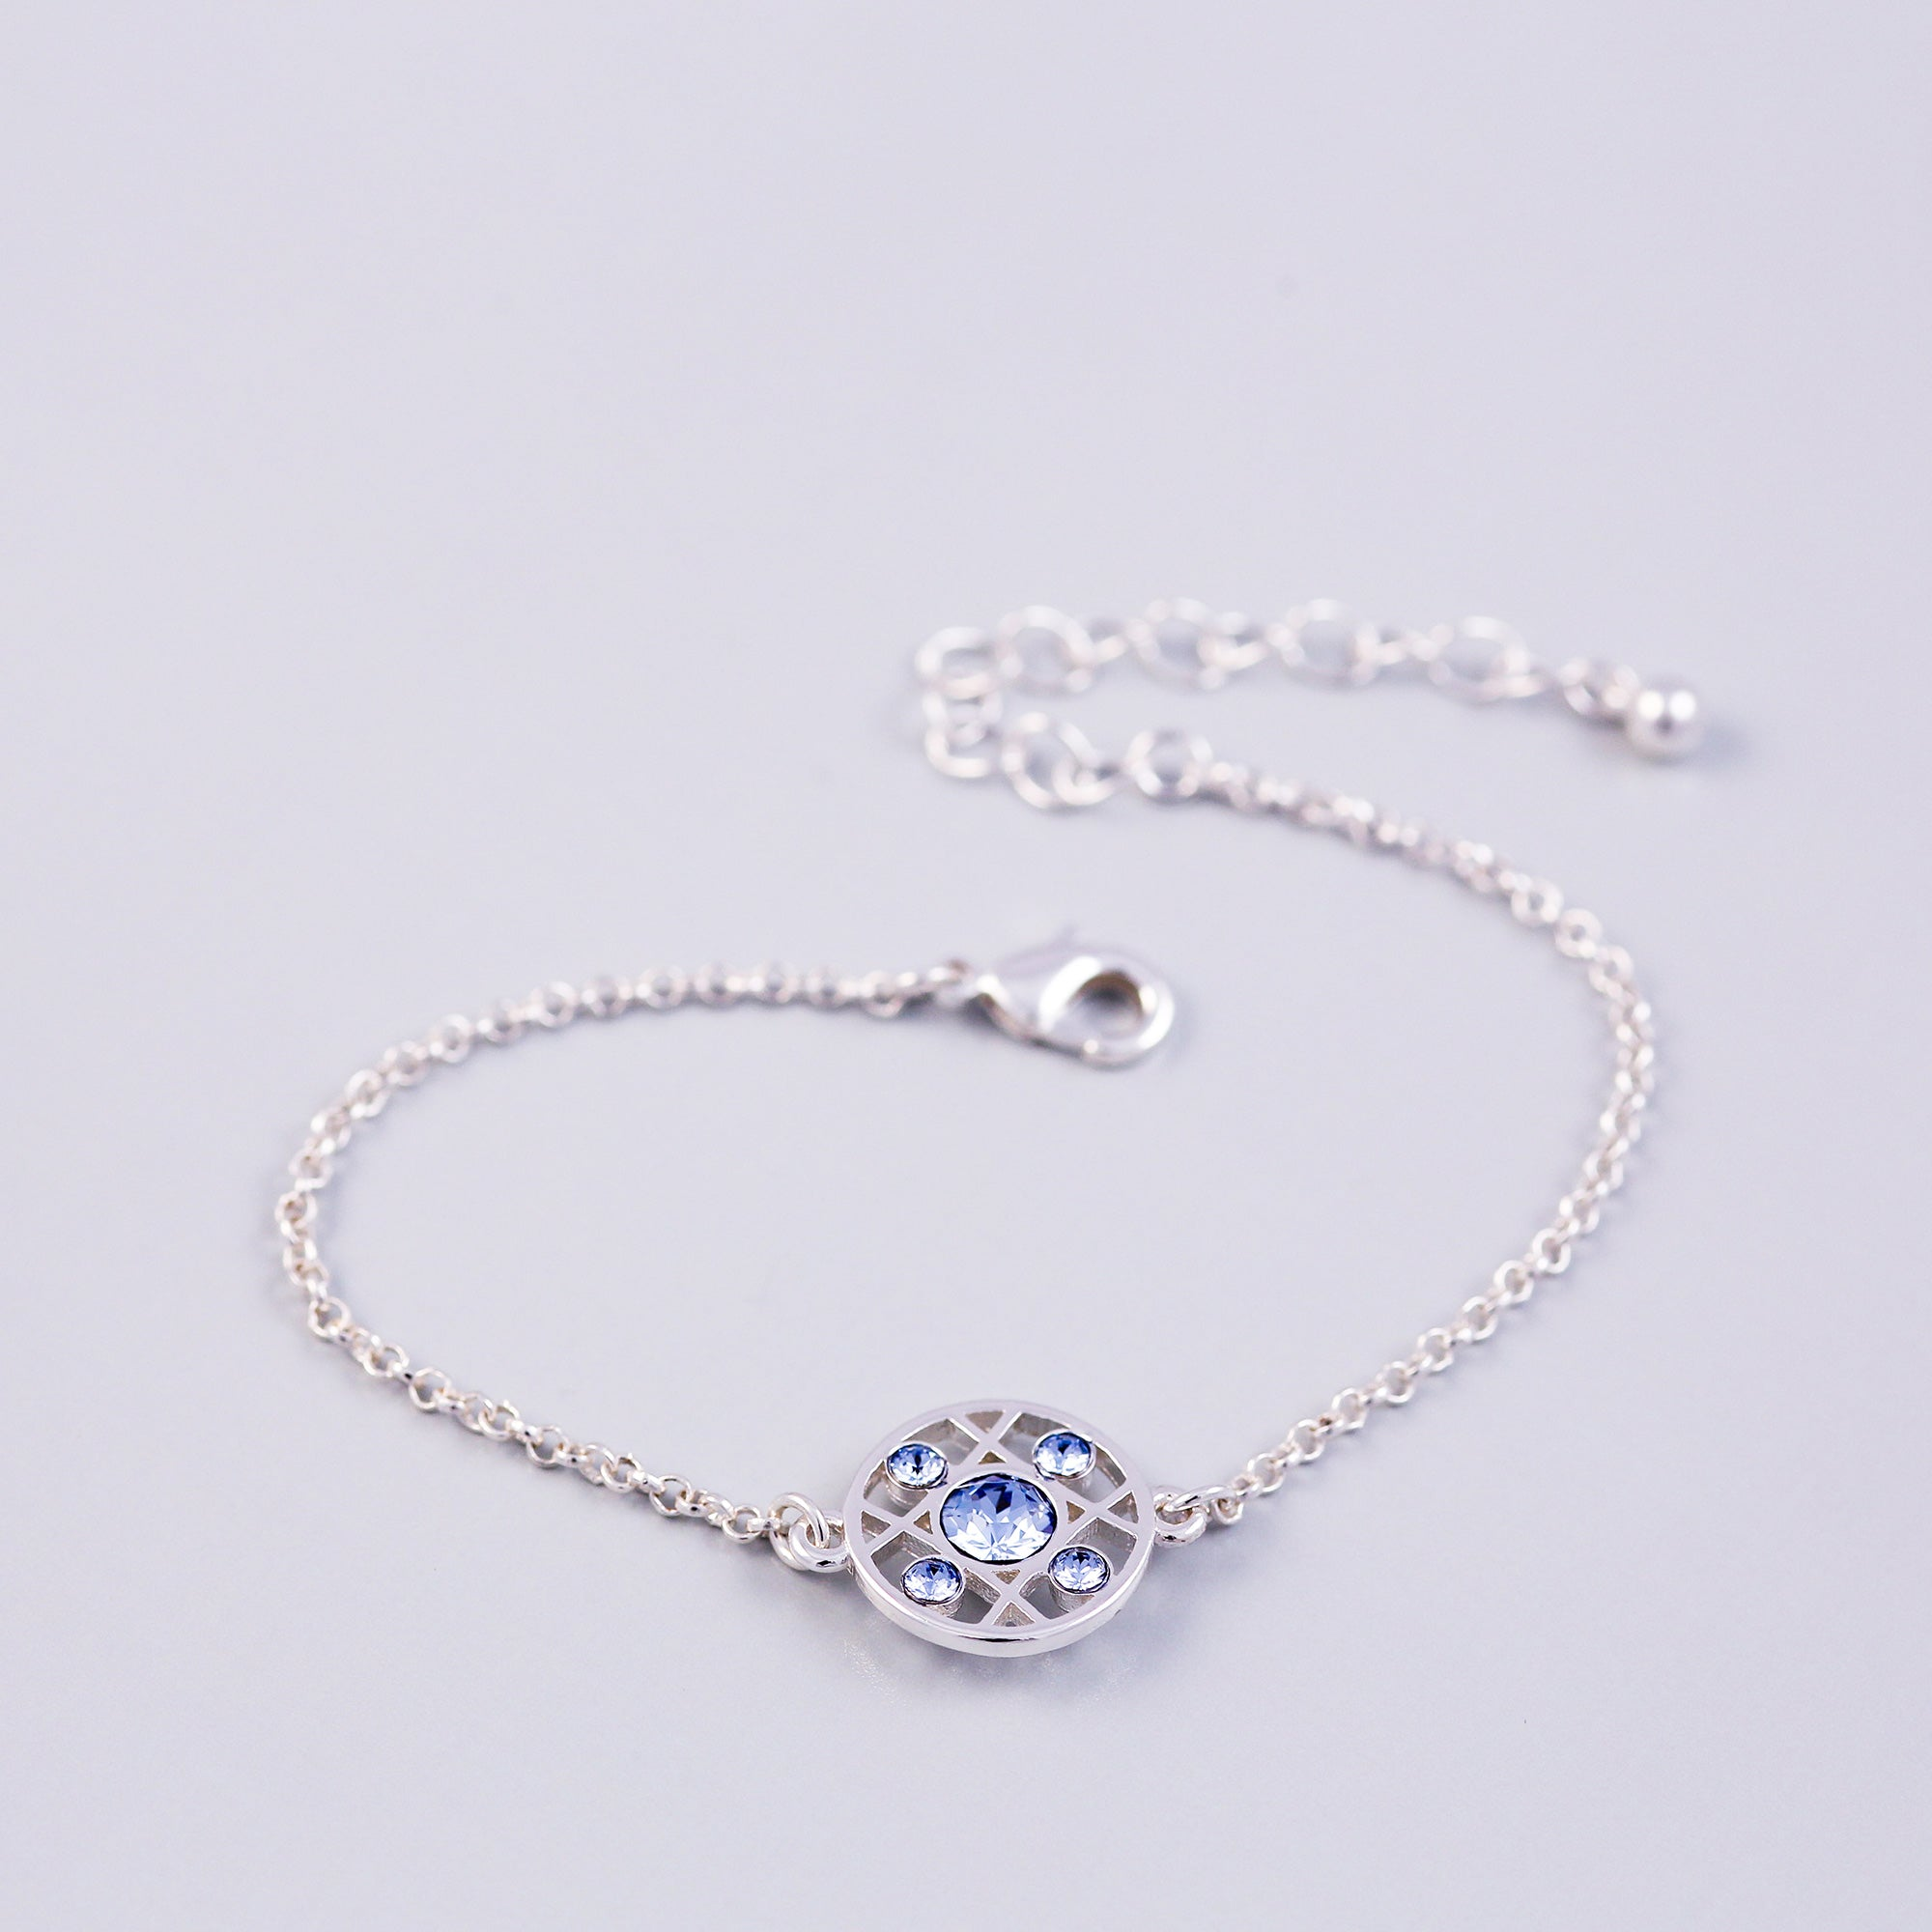 Silver Light Sapphire December Birthstone Hugs & Kisses Bracelet